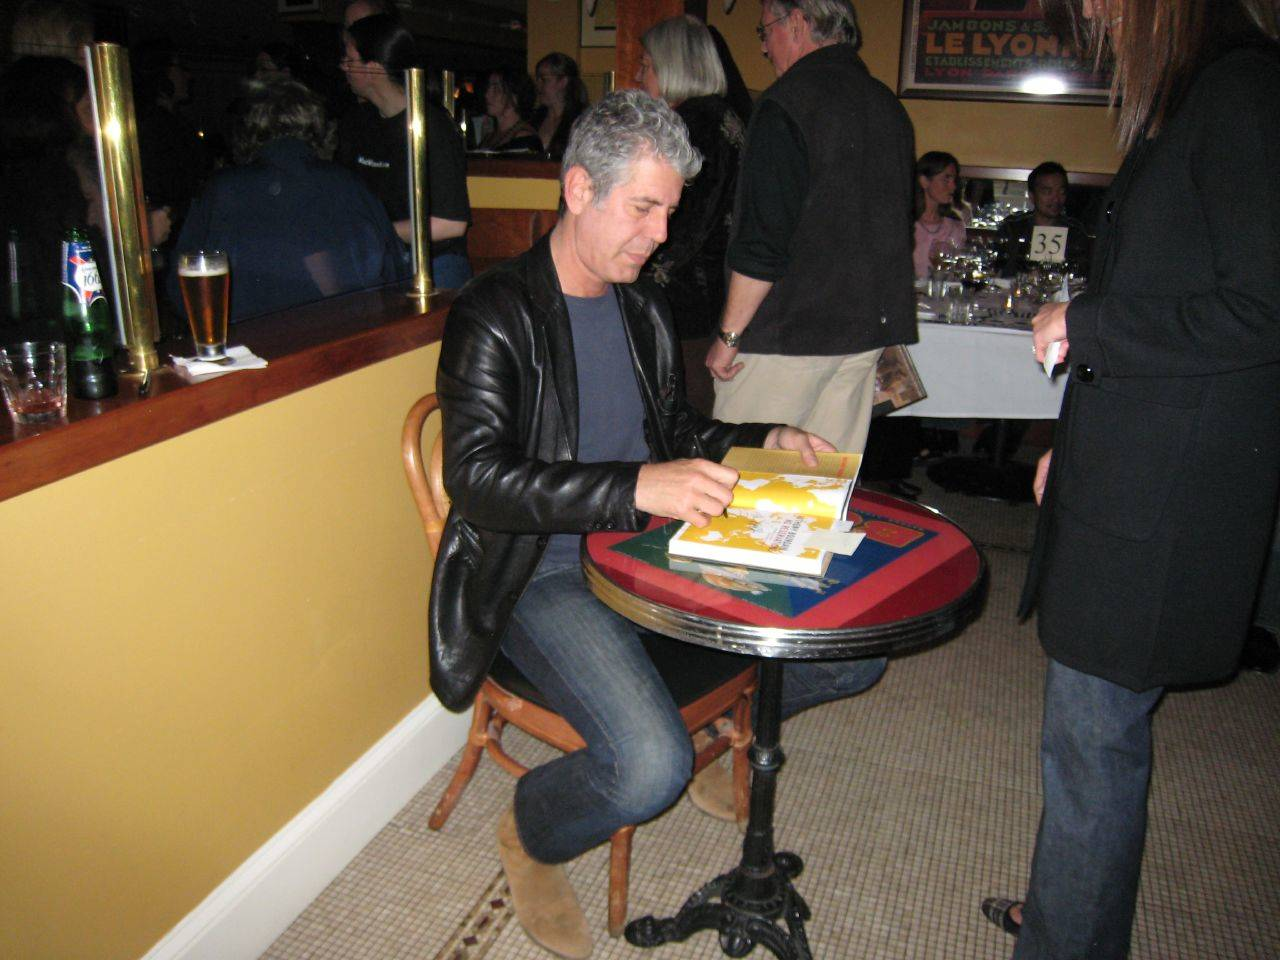 Anthony Bourdain's new travel book is his posthumous gift to the world